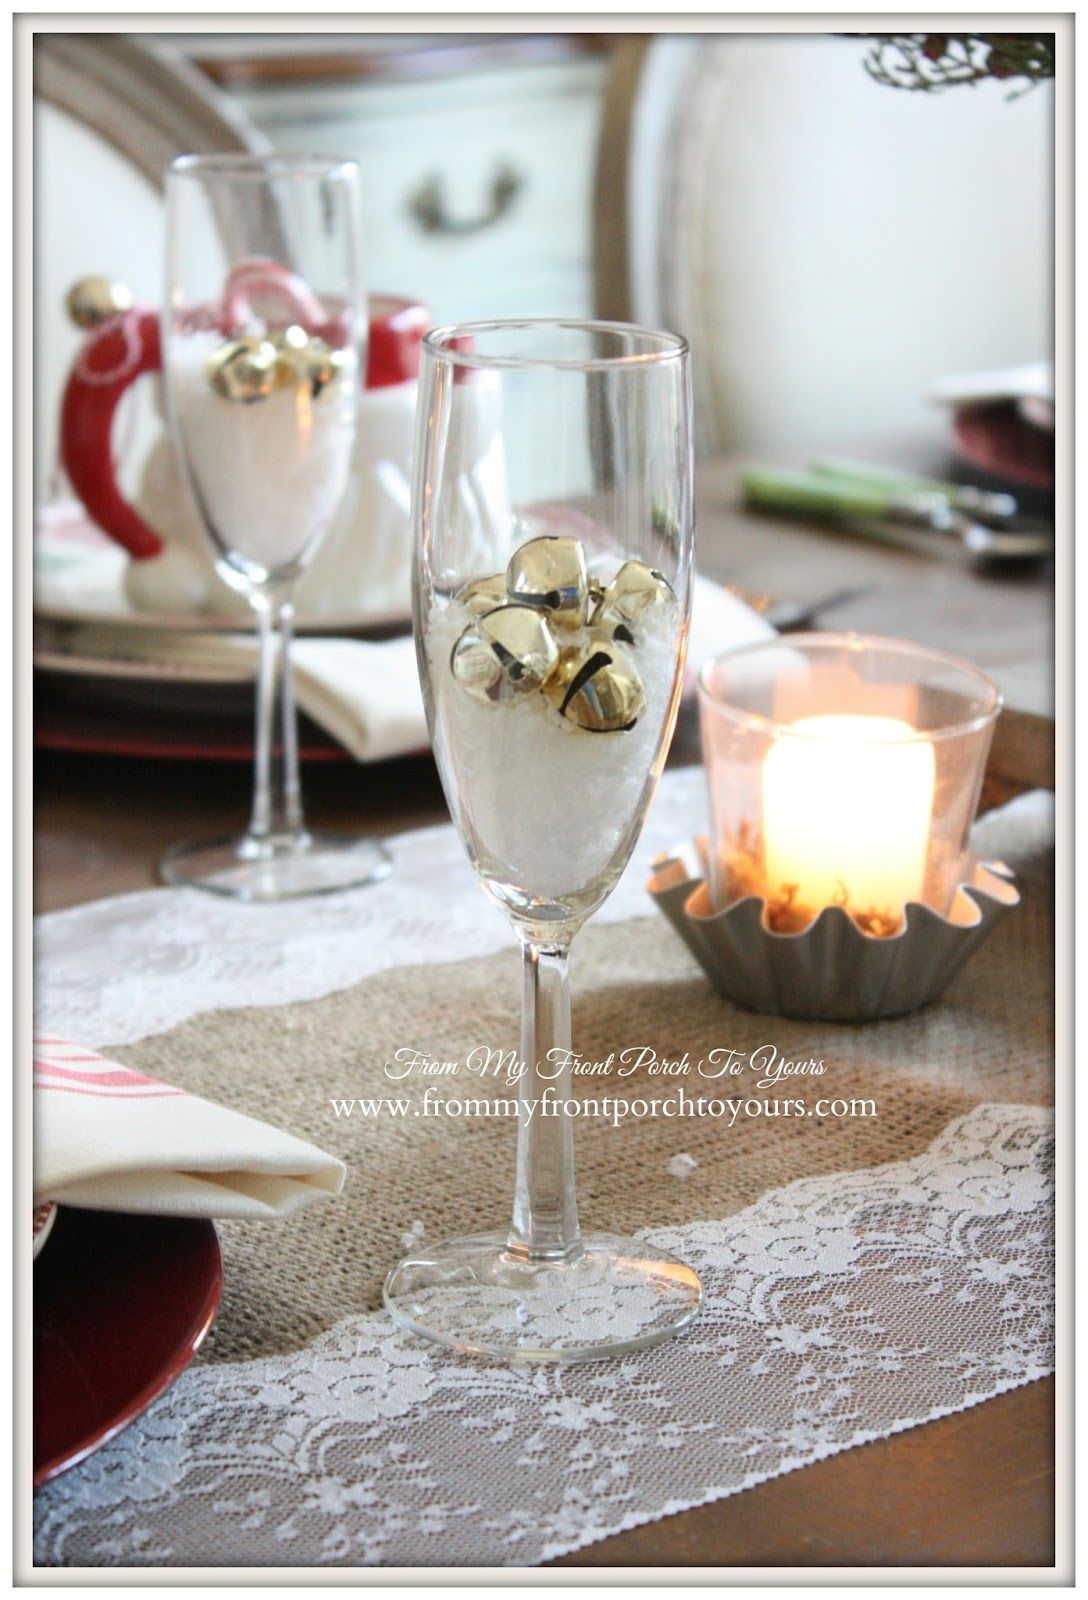 Christmas Table Setting-French Farmhouse Vintage Christmas Dining Room- From My Front Porch To Yours